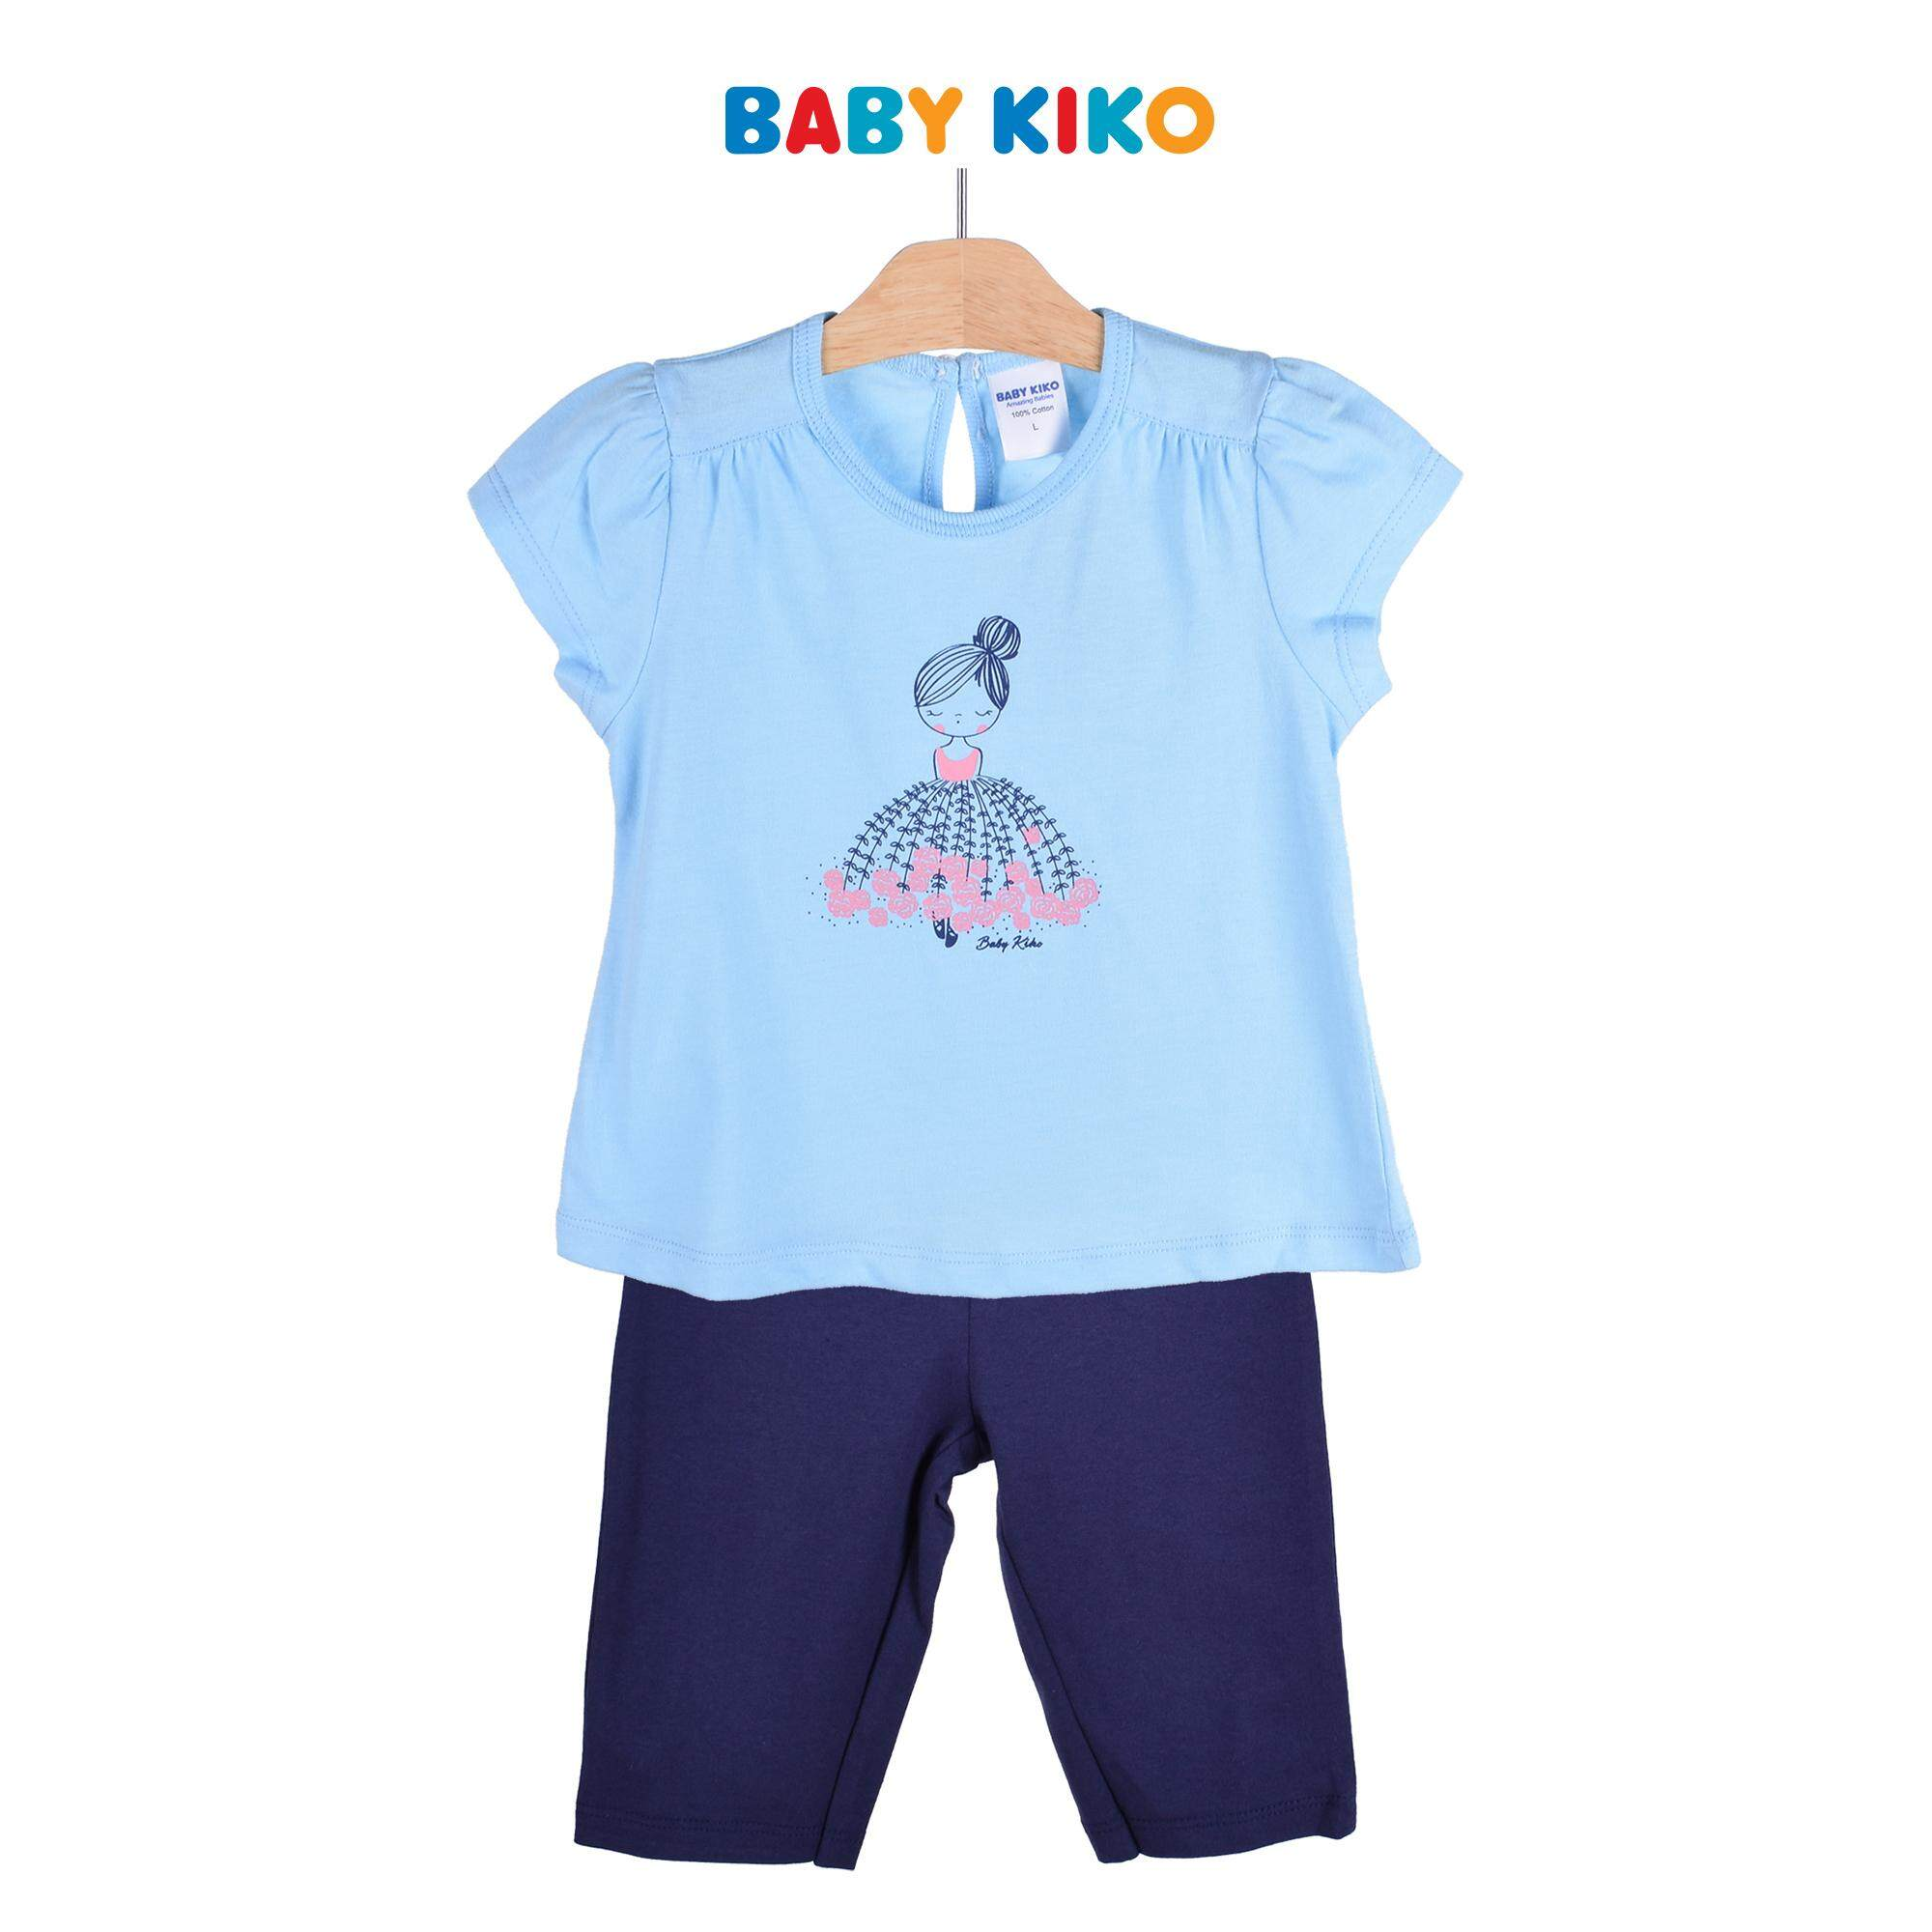 1a0914f1a 10078 items found in Socks   Tights. Baby KIKO Toddler Girl Short Sleeve  Legging Suit 325131-412